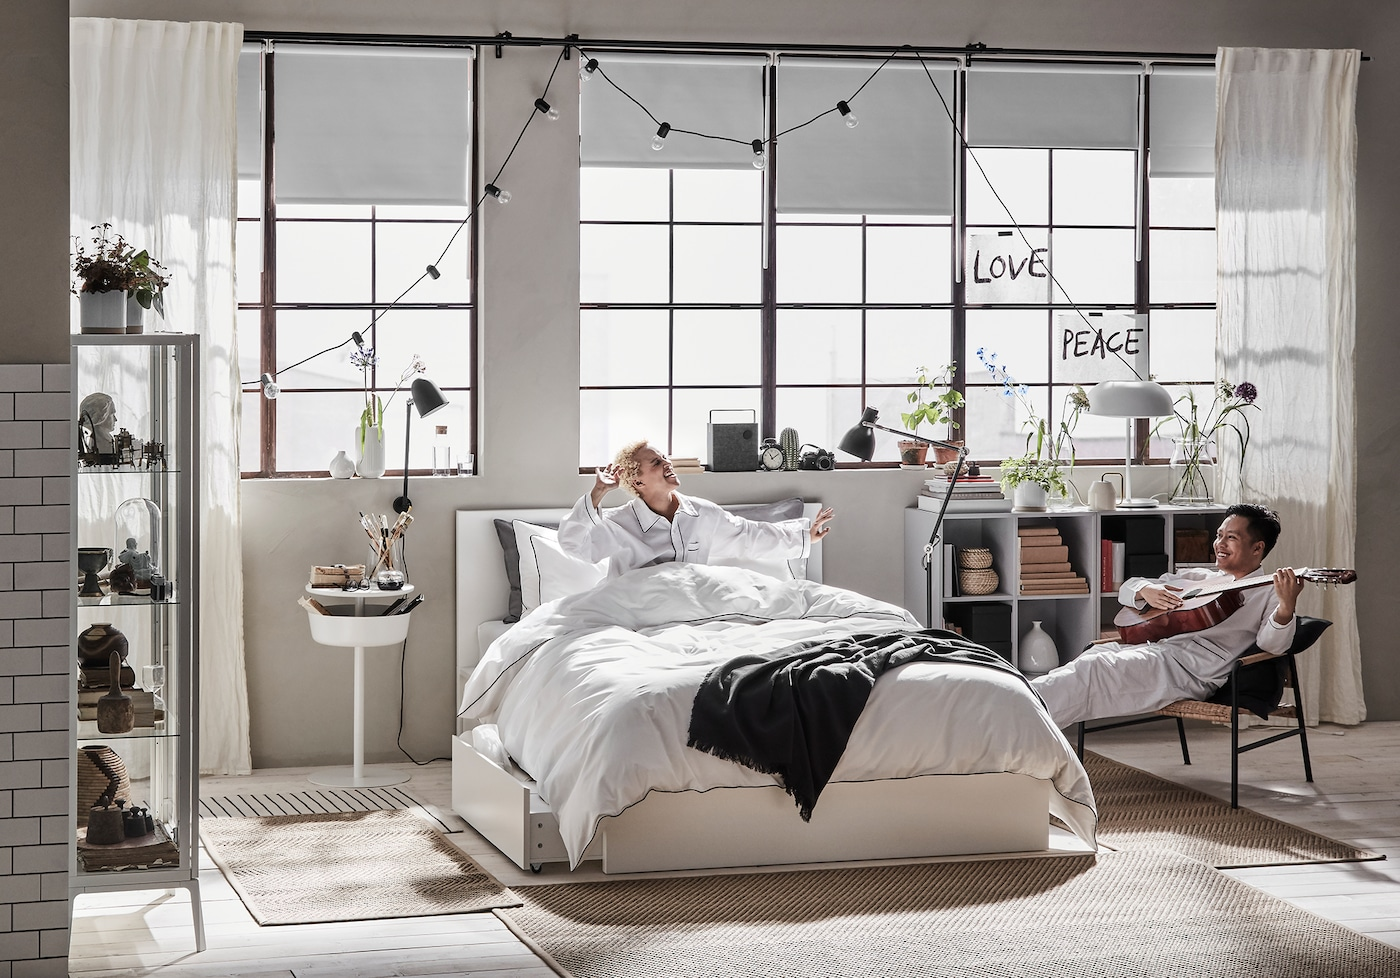 A man plays the guitar and a woman sings on the bed in an industrial loft.